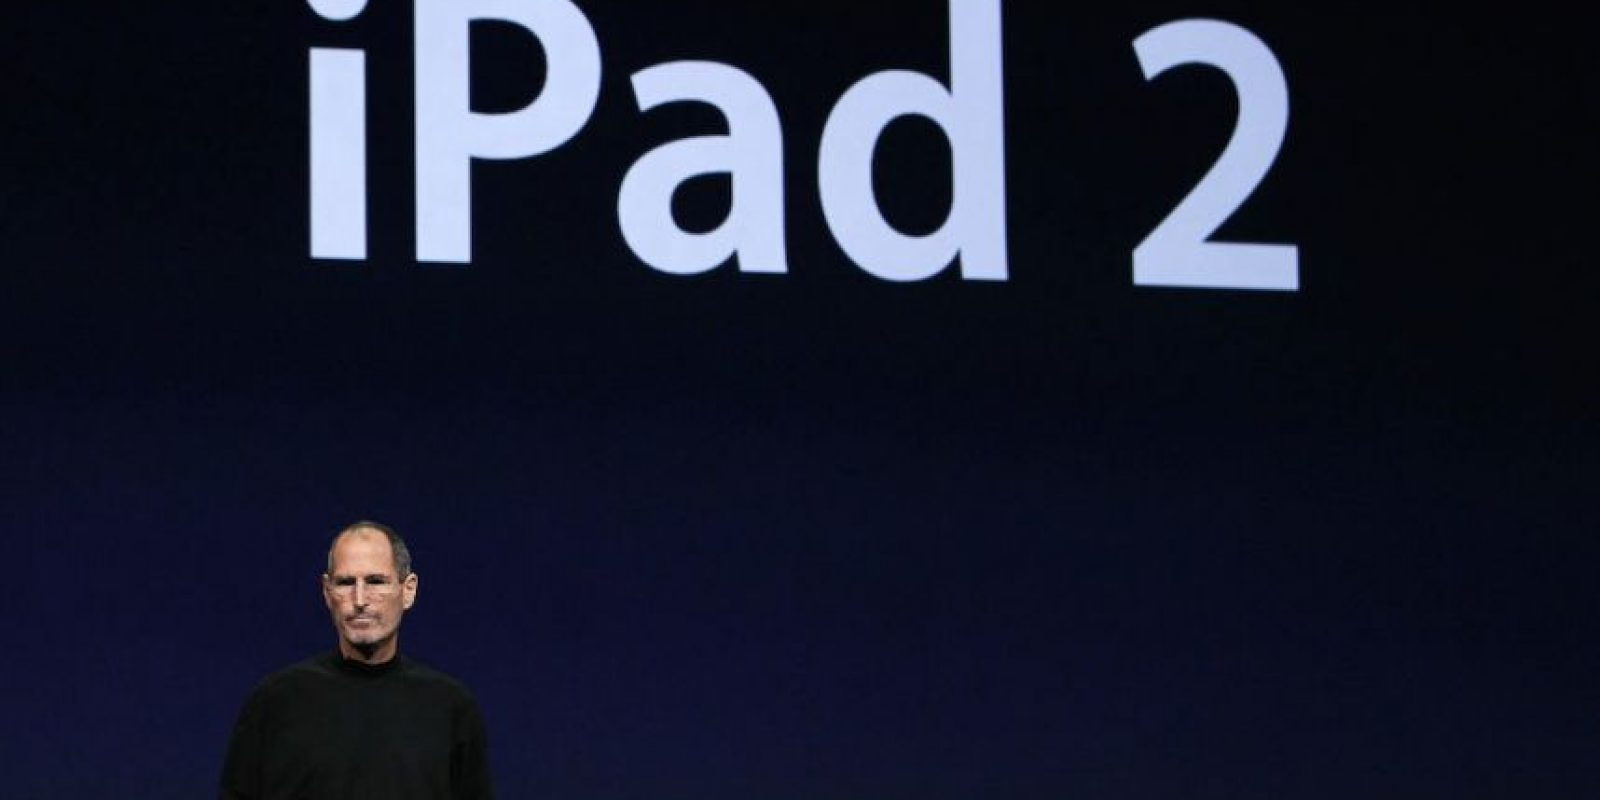 iPad 2 (2011) Foto: Apple